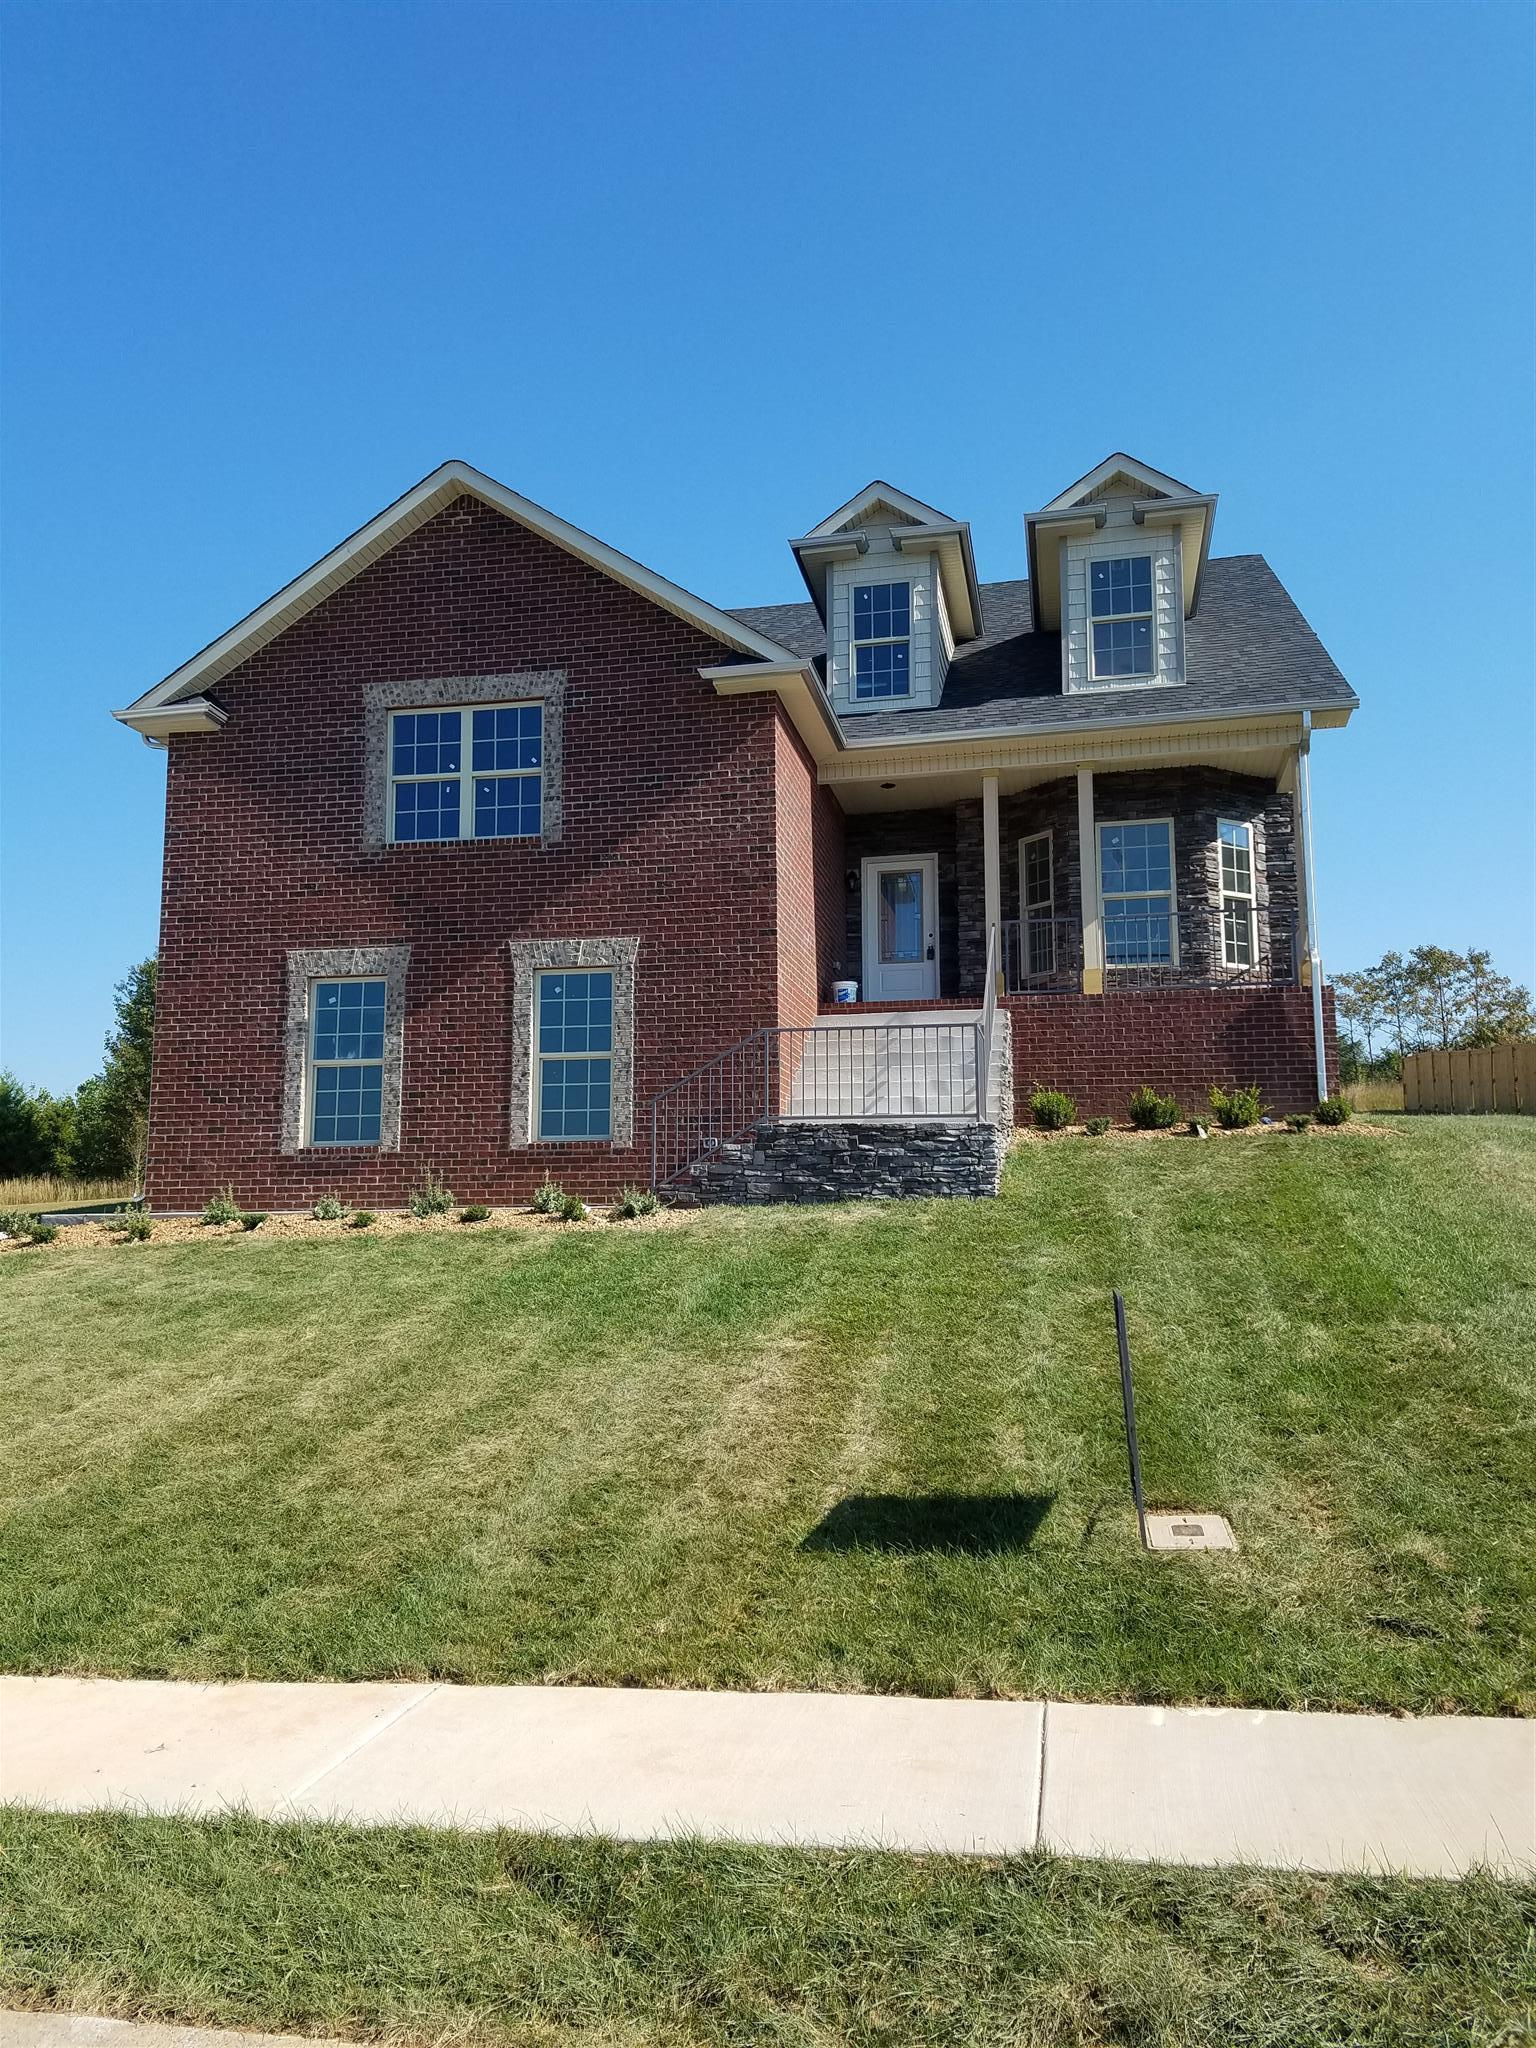 3535 Rabbit Run Trl, Adams, TN 37010